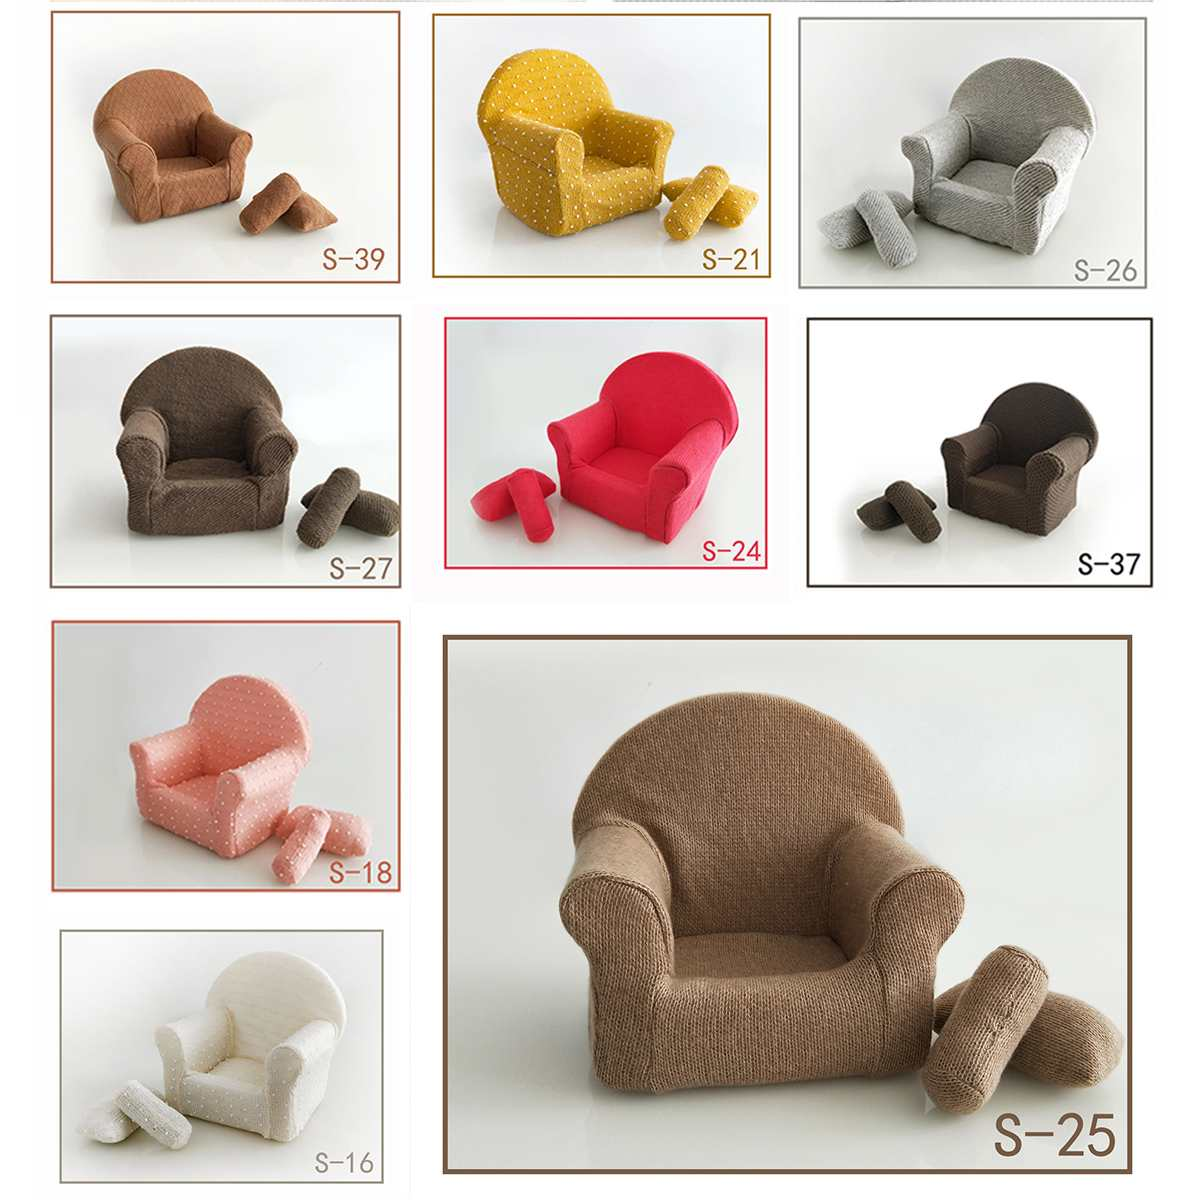 Soft Foam Cotton Photographing Props Studio Shooing Kids Children's Infant Baby Posing Chair Seats 10 Color Small Sofa Newborn